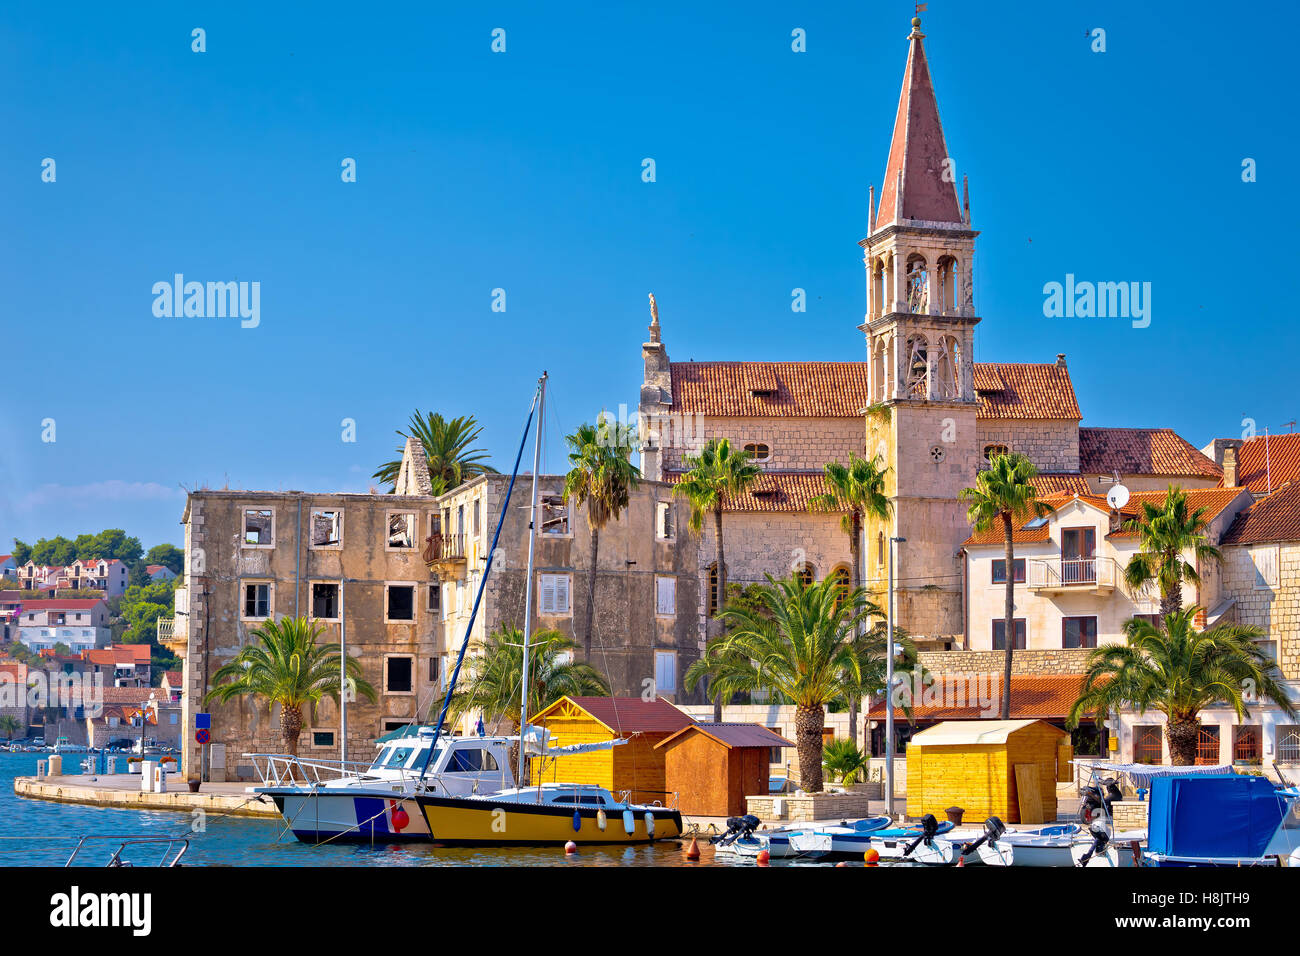 Town of Milna historic skyline, Island of Brac, Dalmatia, Croatia - Stock Image